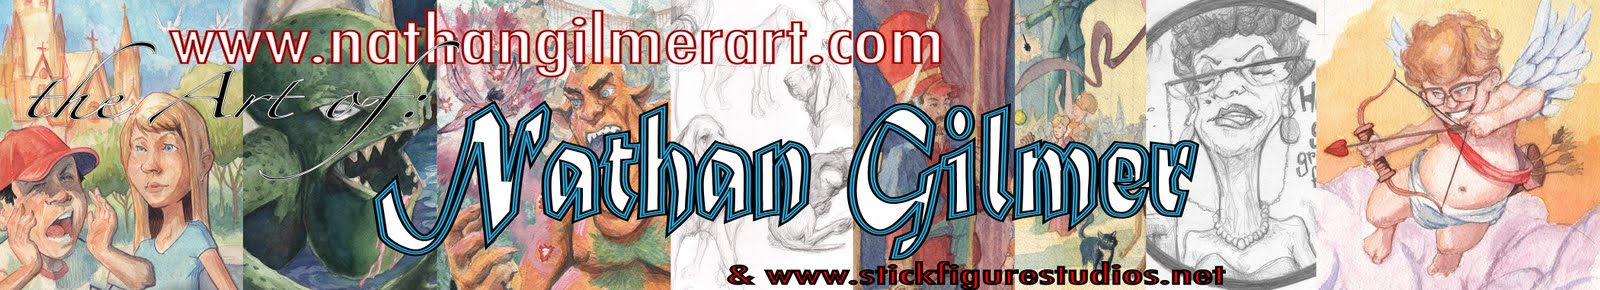 www.nathangilmerart.com the art of Nathan Gilmer